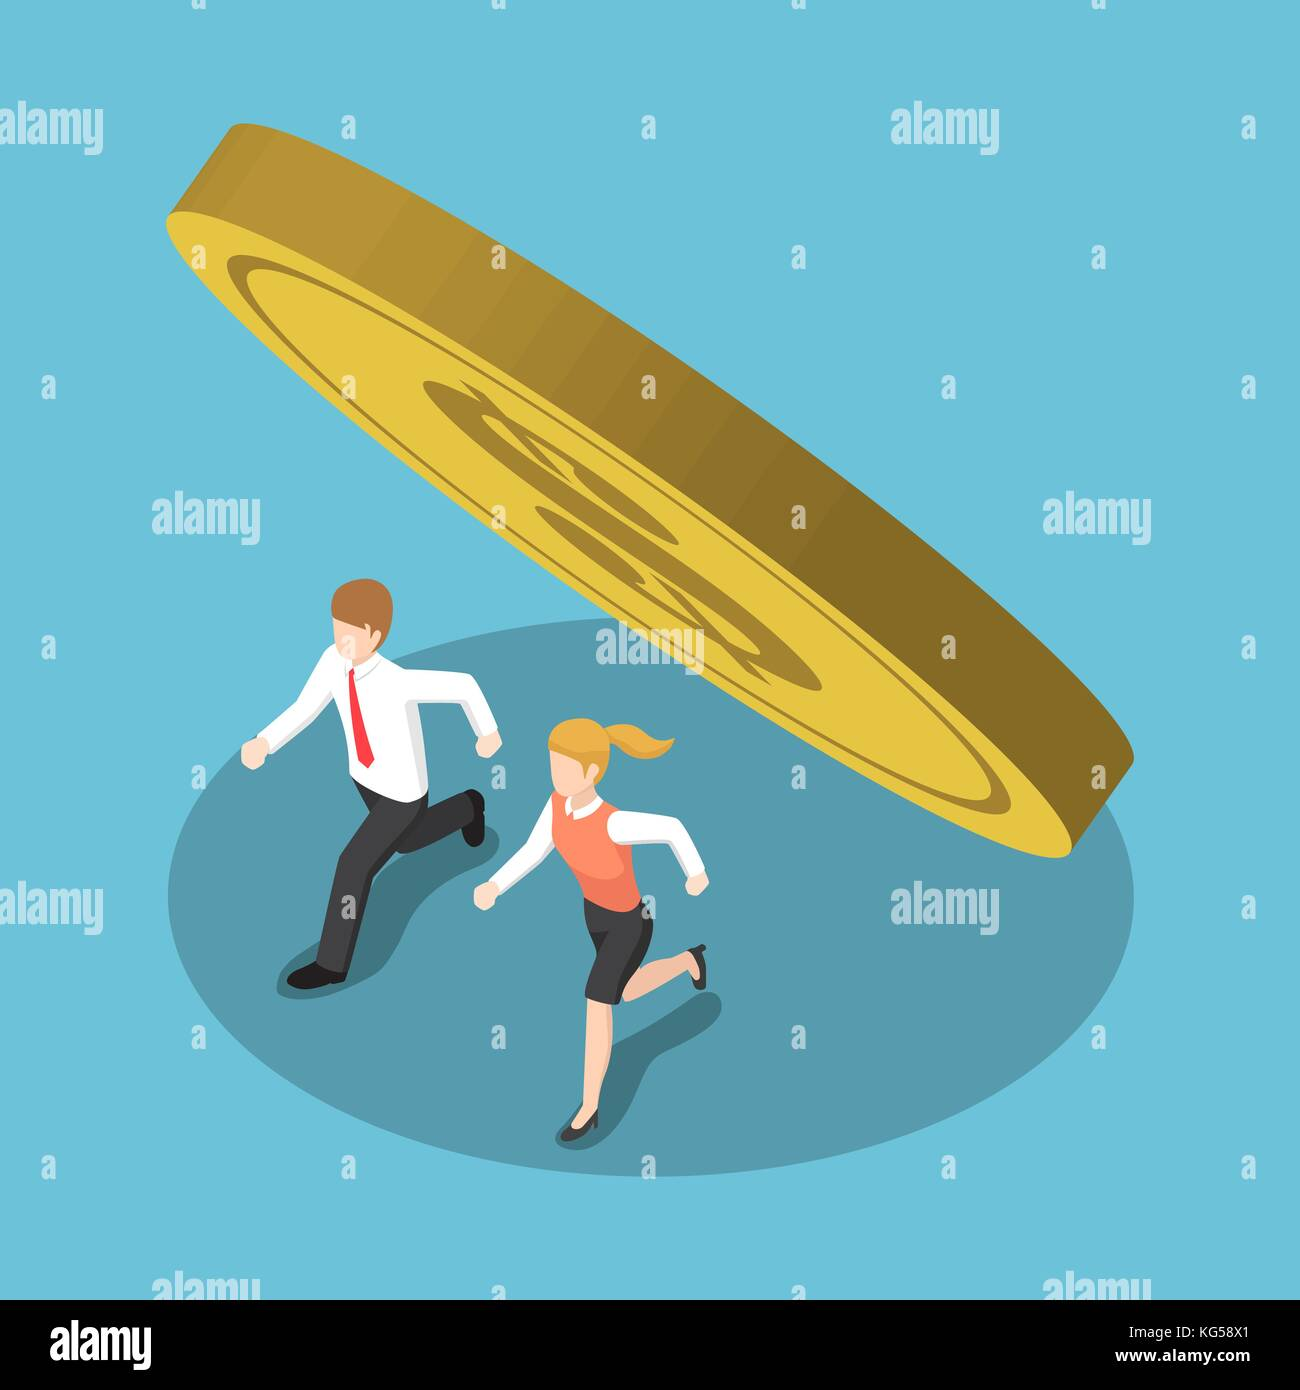 Flat 3d isometric business people running away from coin that falling. Financial crisis concept. Stock Vector